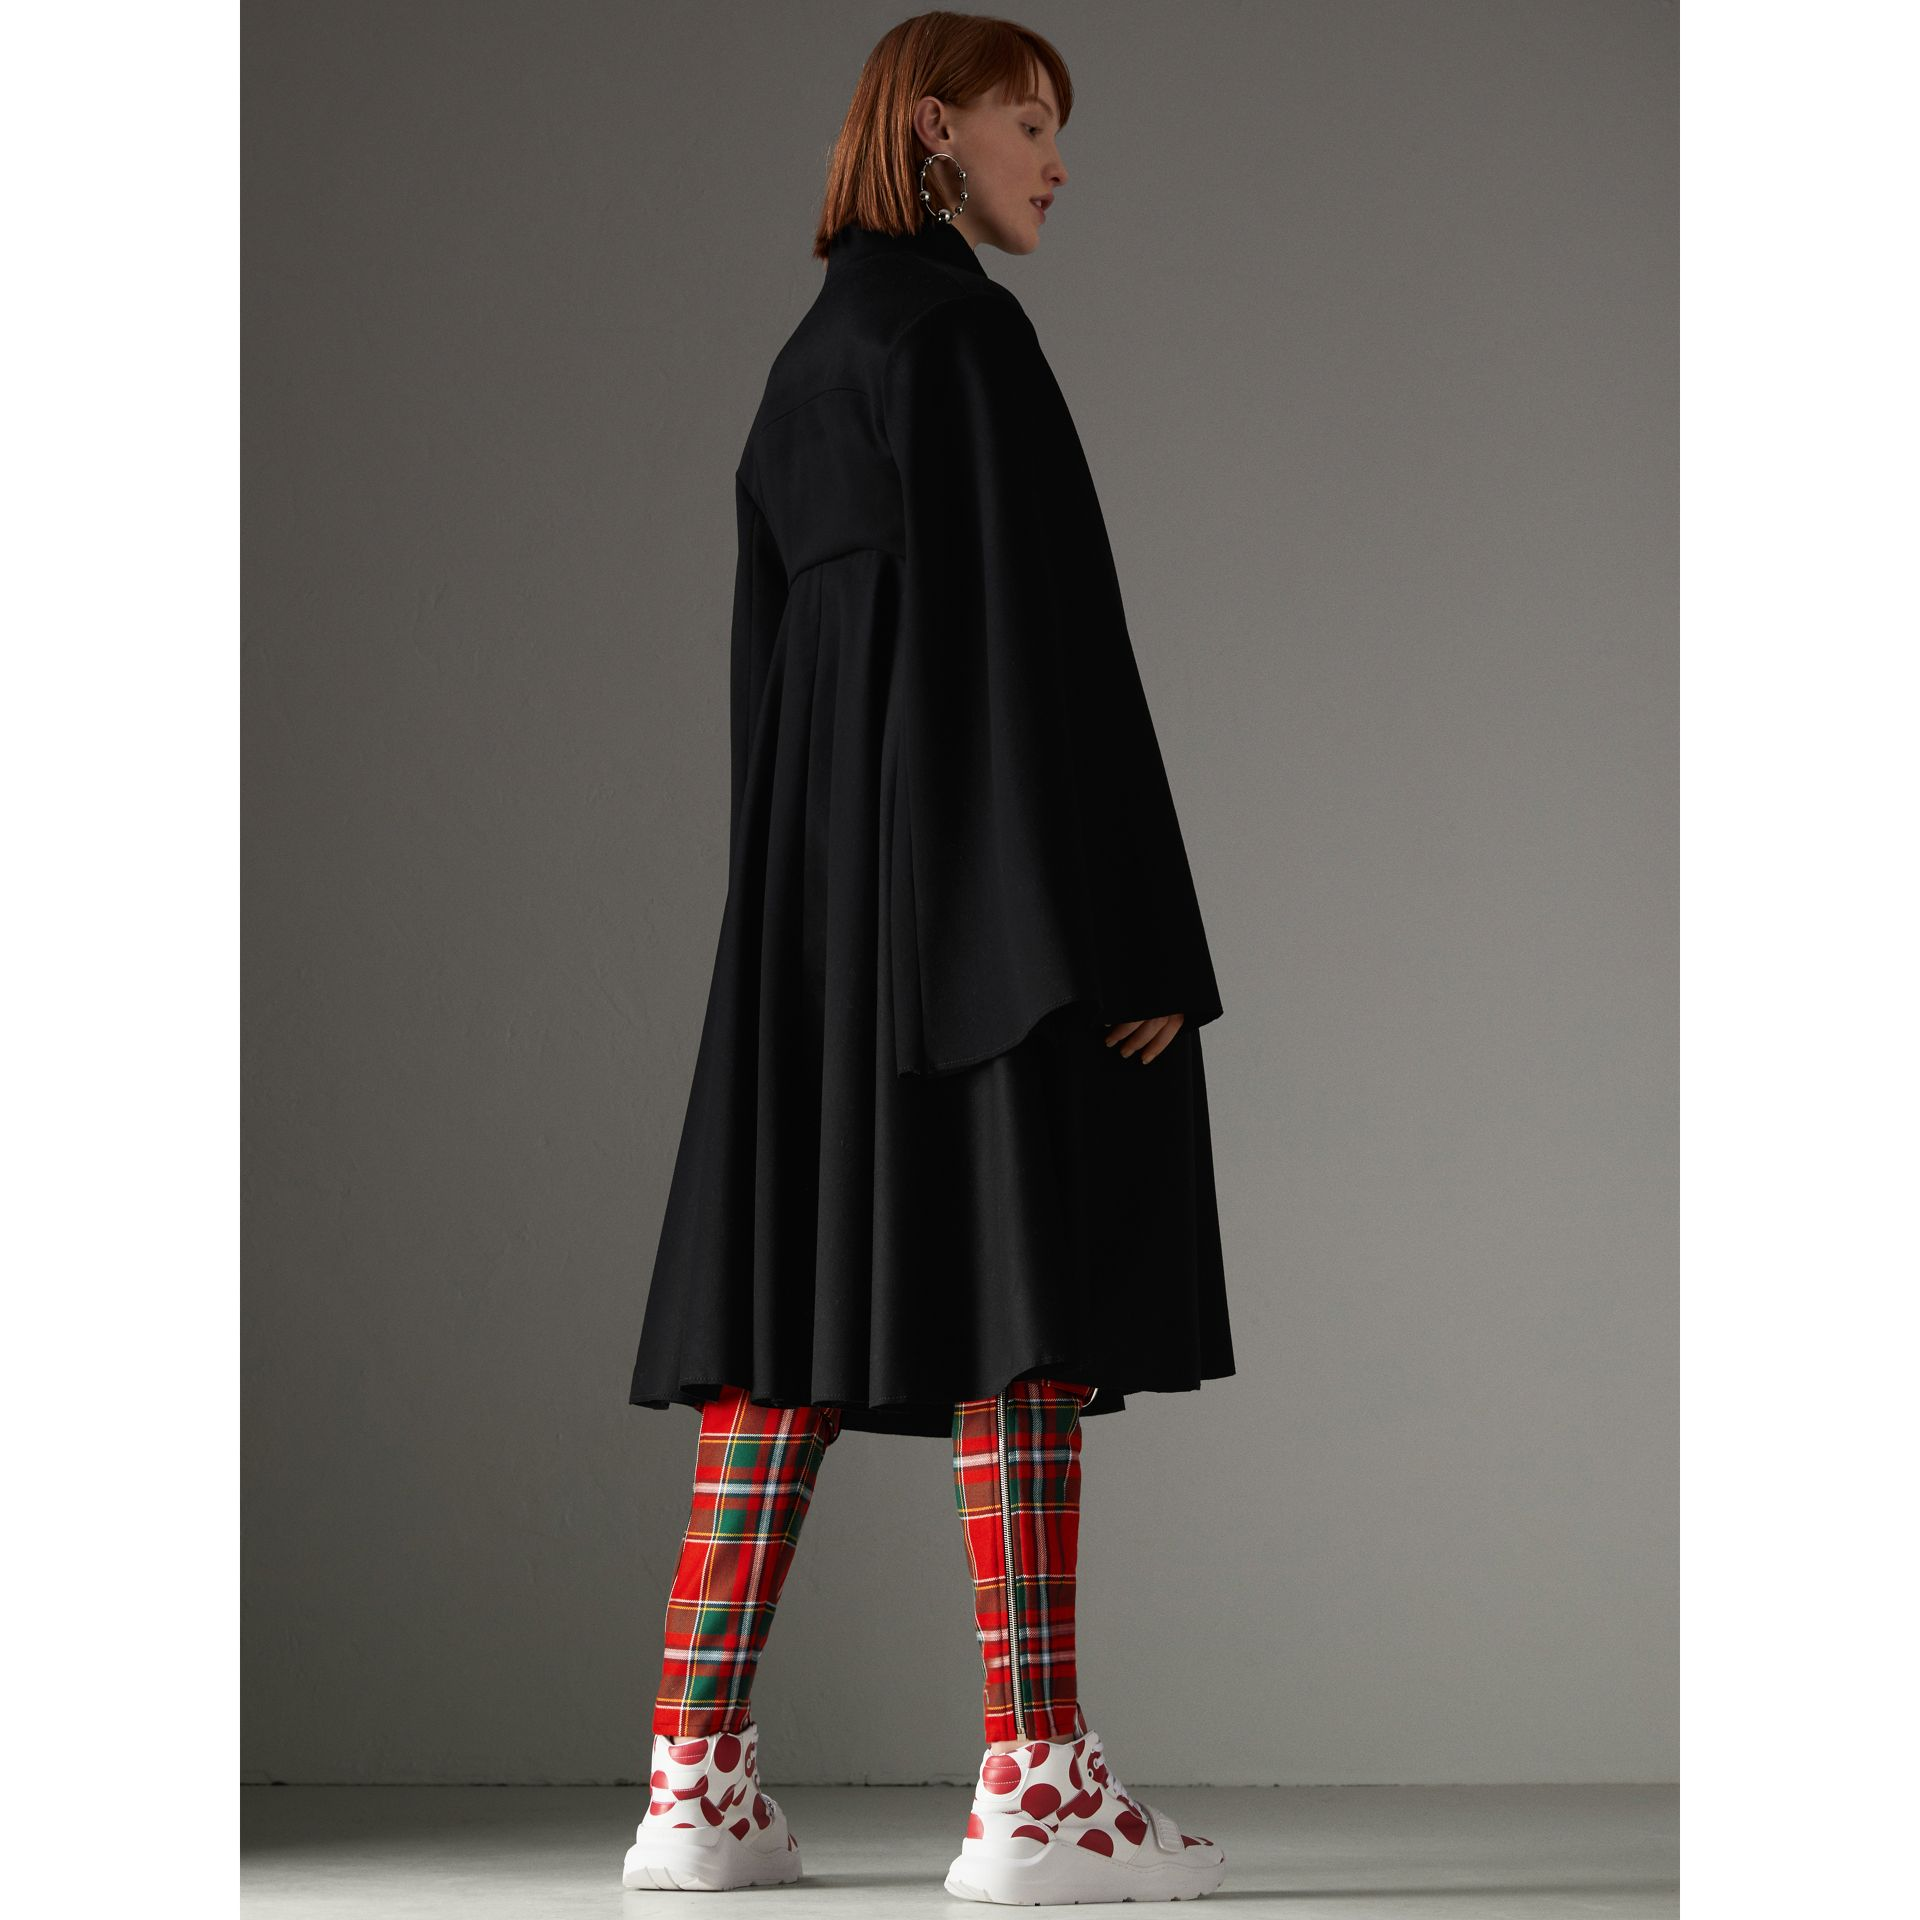 Tailored Doeskin Wool Cape in Black - Women | Burberry Canada - gallery image 2